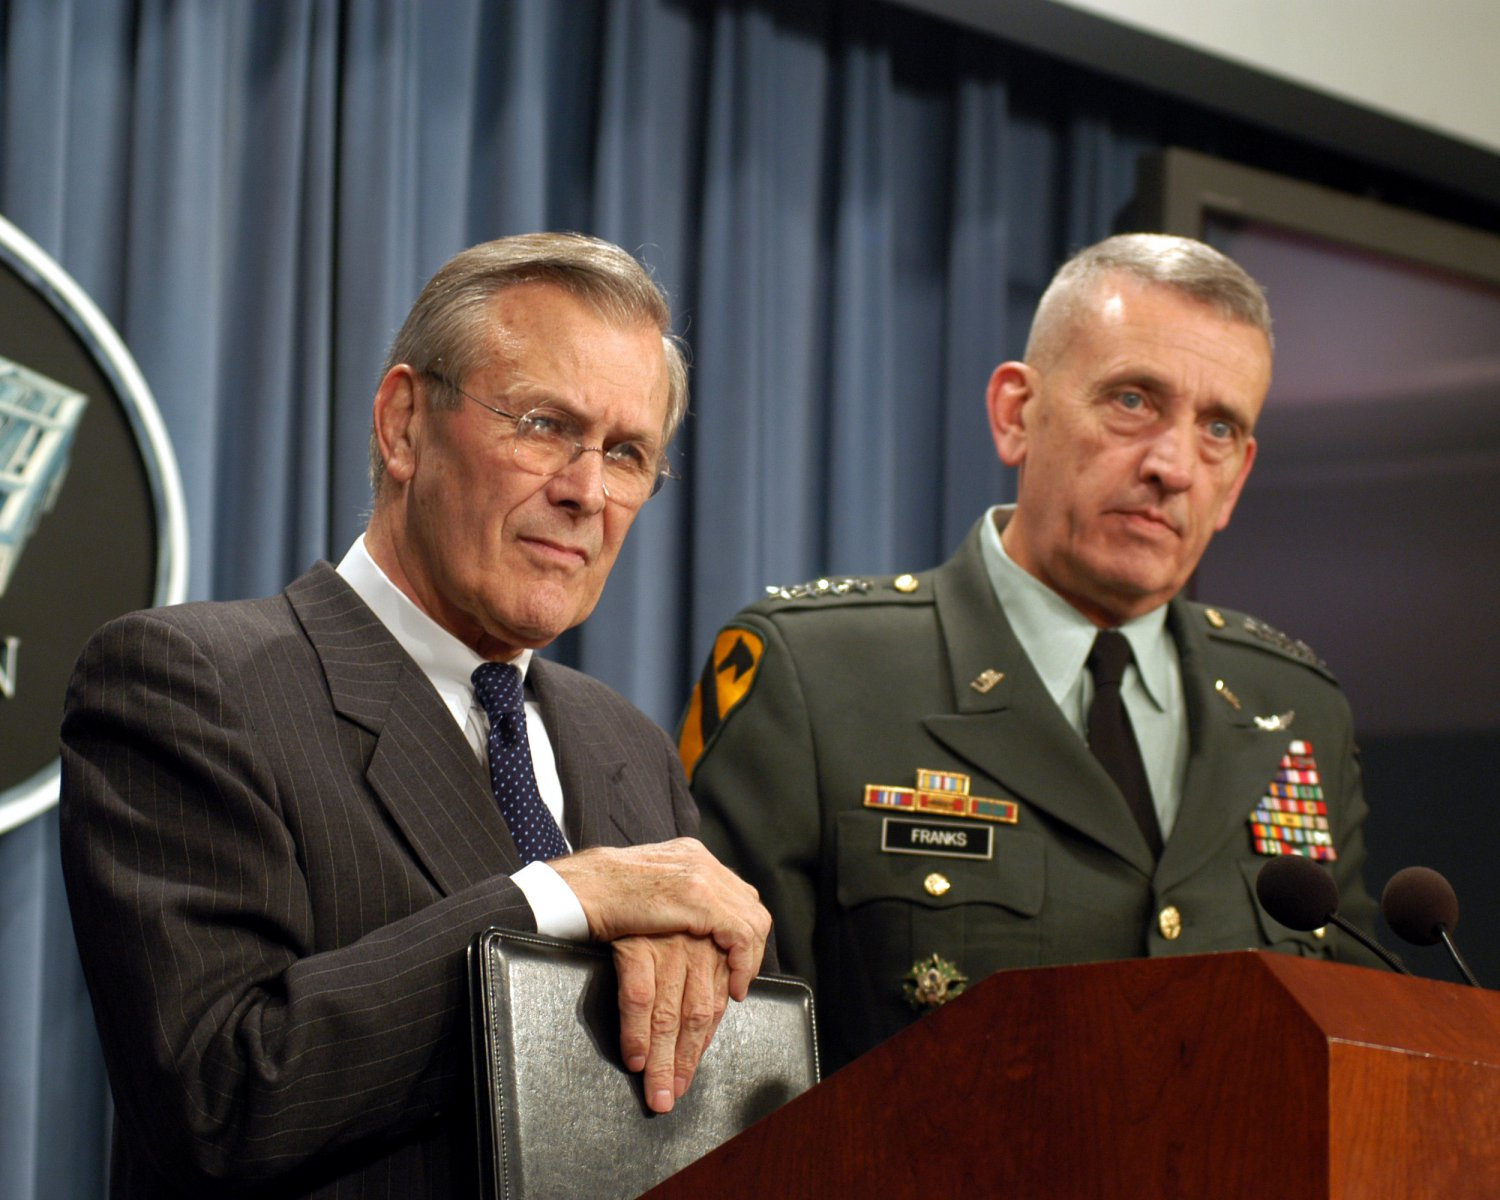 SECRETARY OF DEFENSE DONALD RUMSFELD w/ GEN TOMMY FRANKS - 8X10 PHOTO (EP-590)